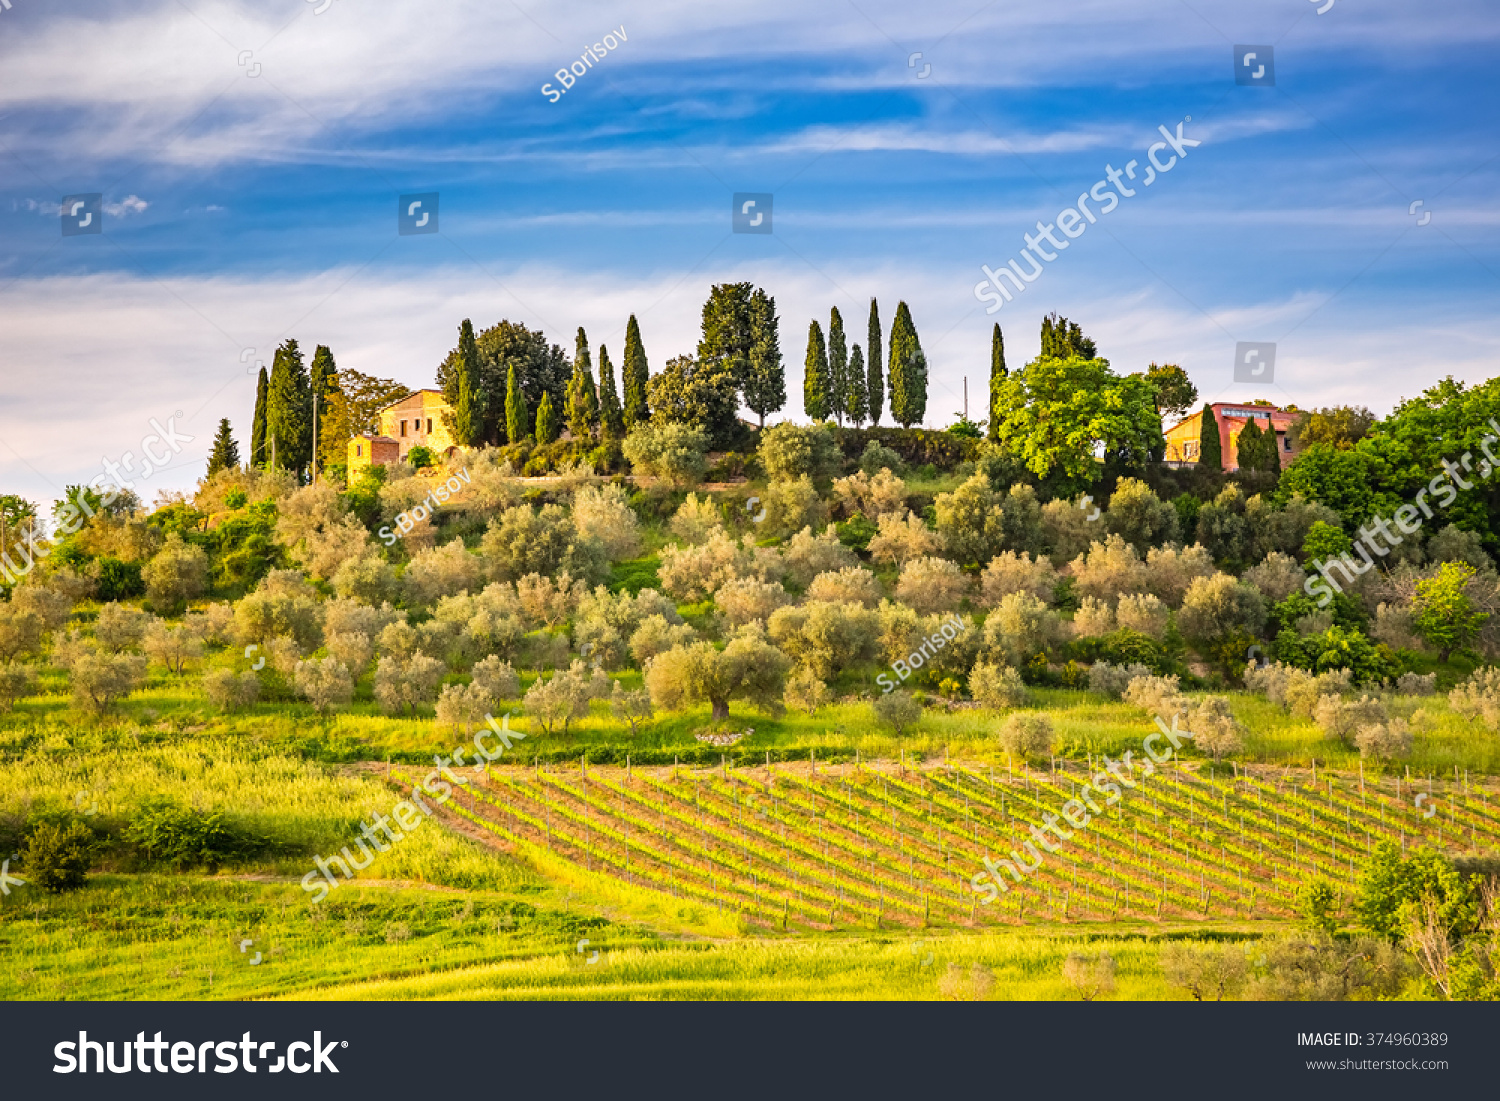 beautiful tuscany landscape italy - photo #24